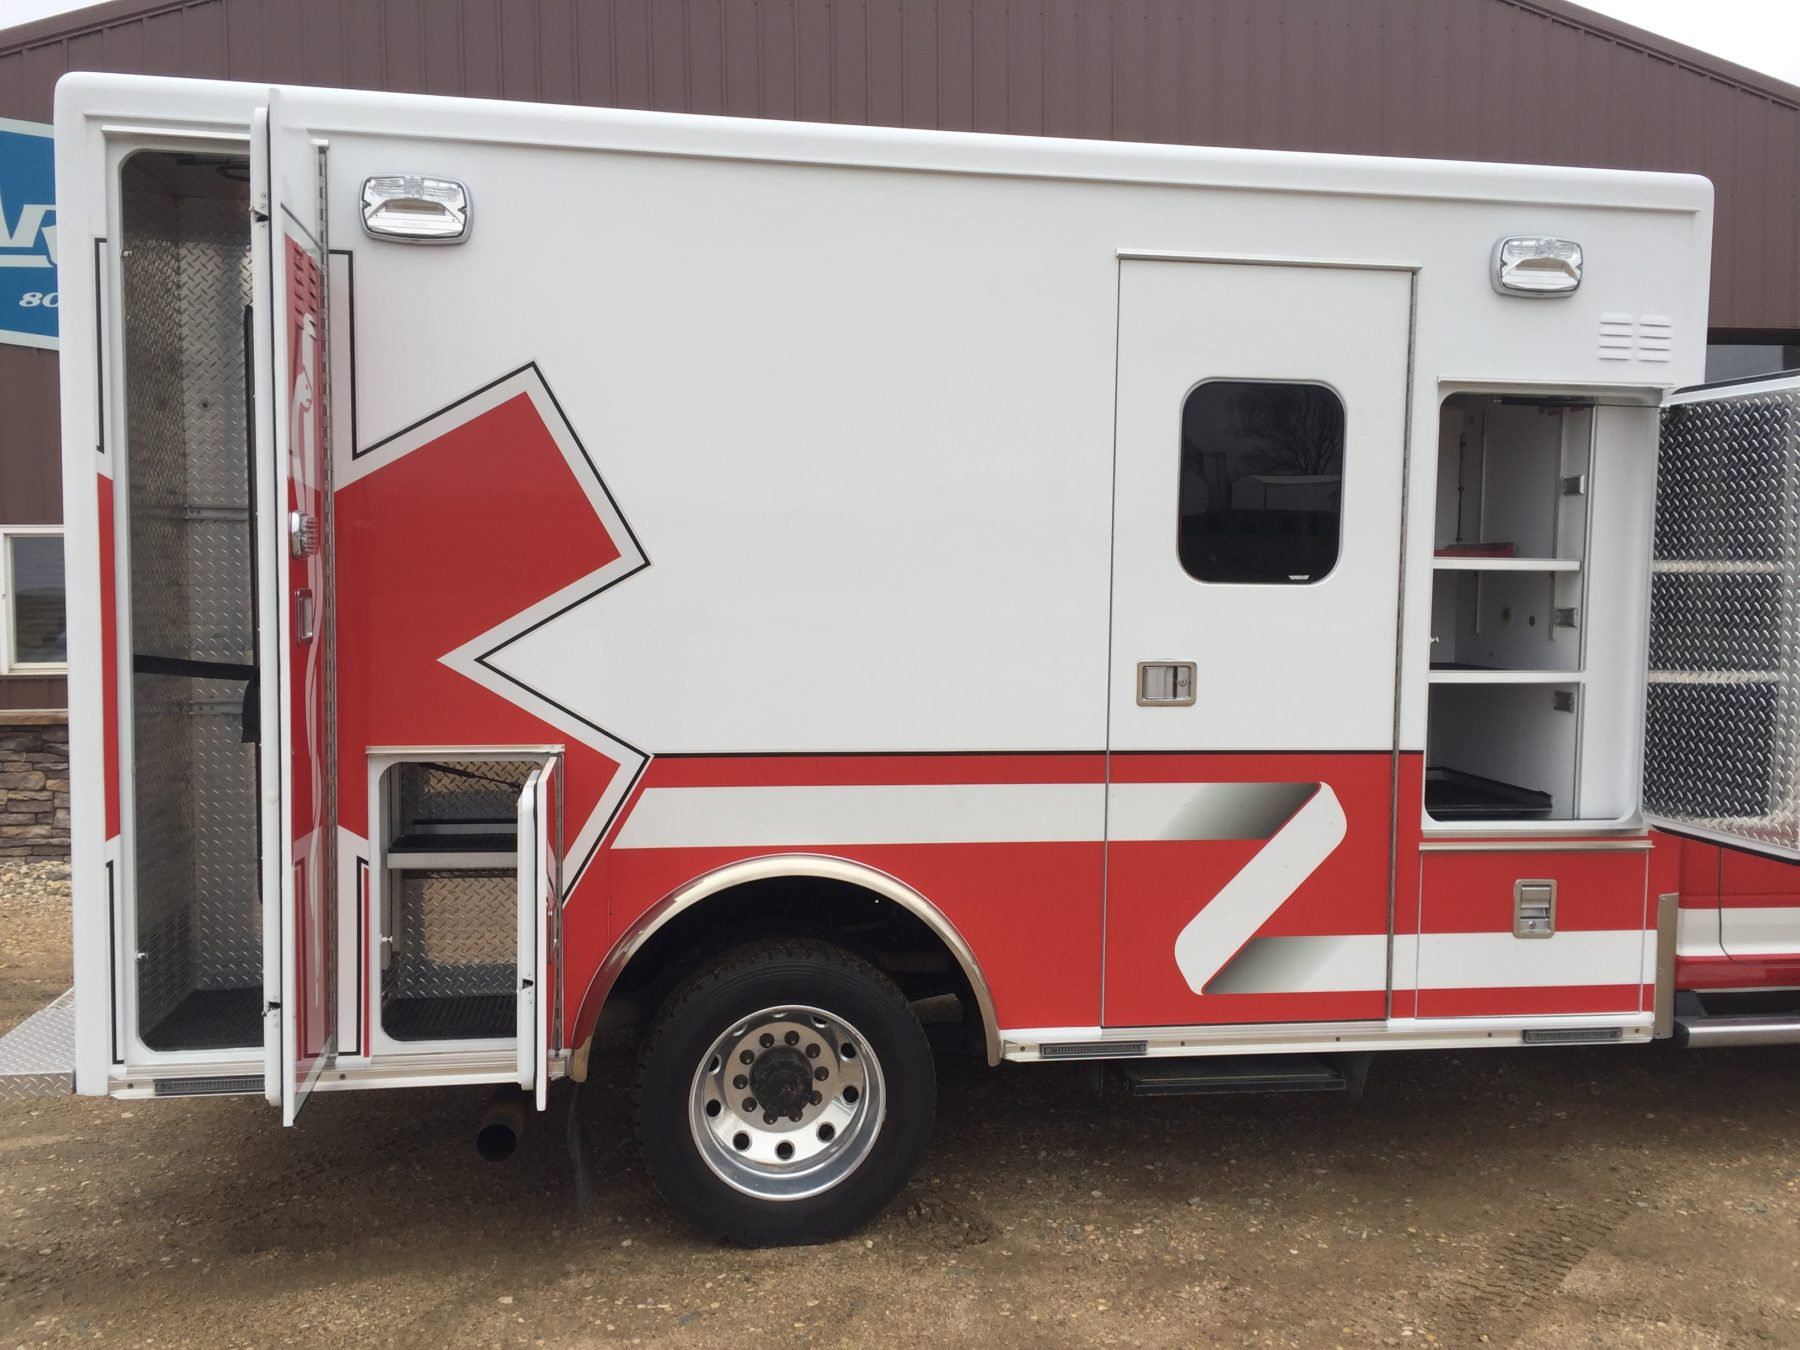 2015 Dodge 4500 4x4 Heavy Duty Ambulance For Sale – Picture 7